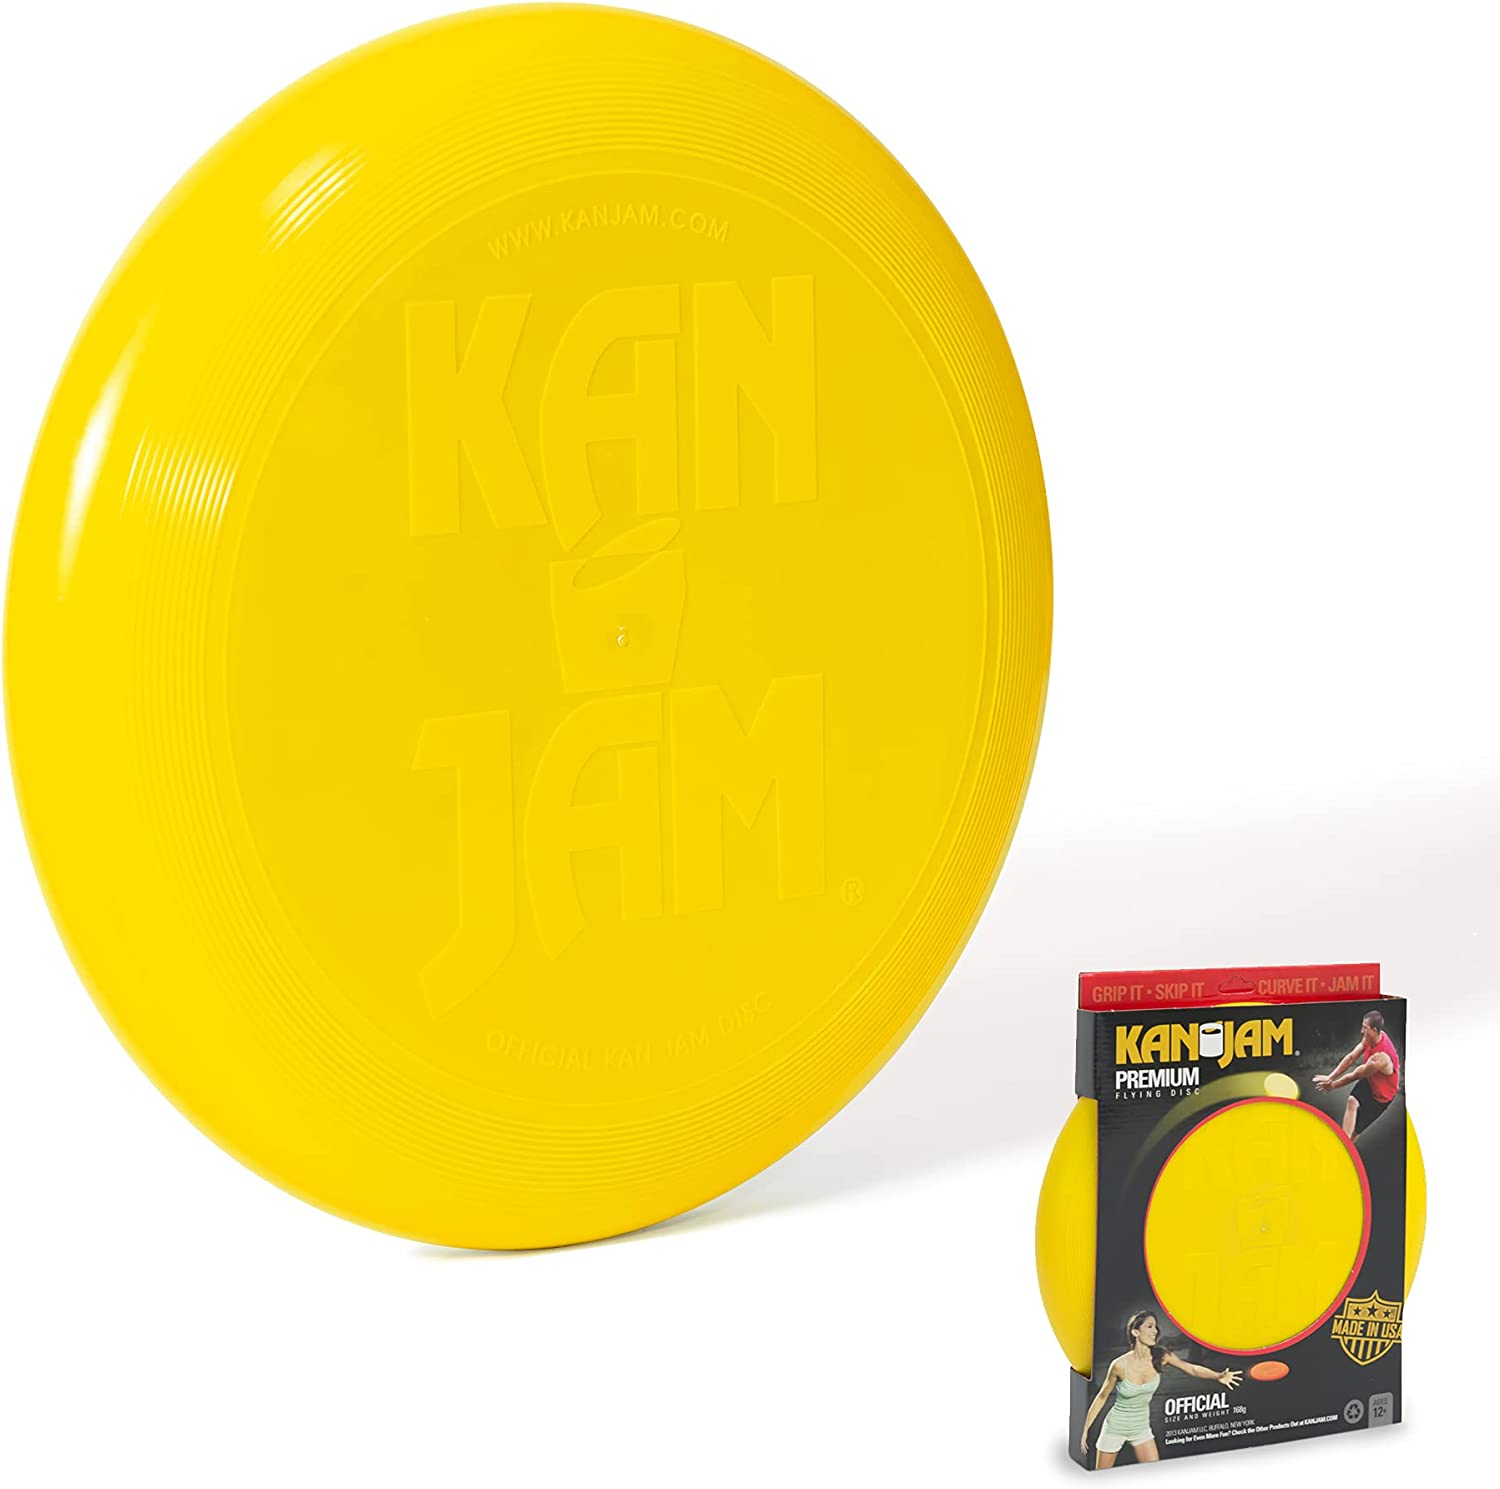 Kan Jam Max 66% OFF Premium Frisbee for Disc Official Games Outdoor We OFFer at cheap prices